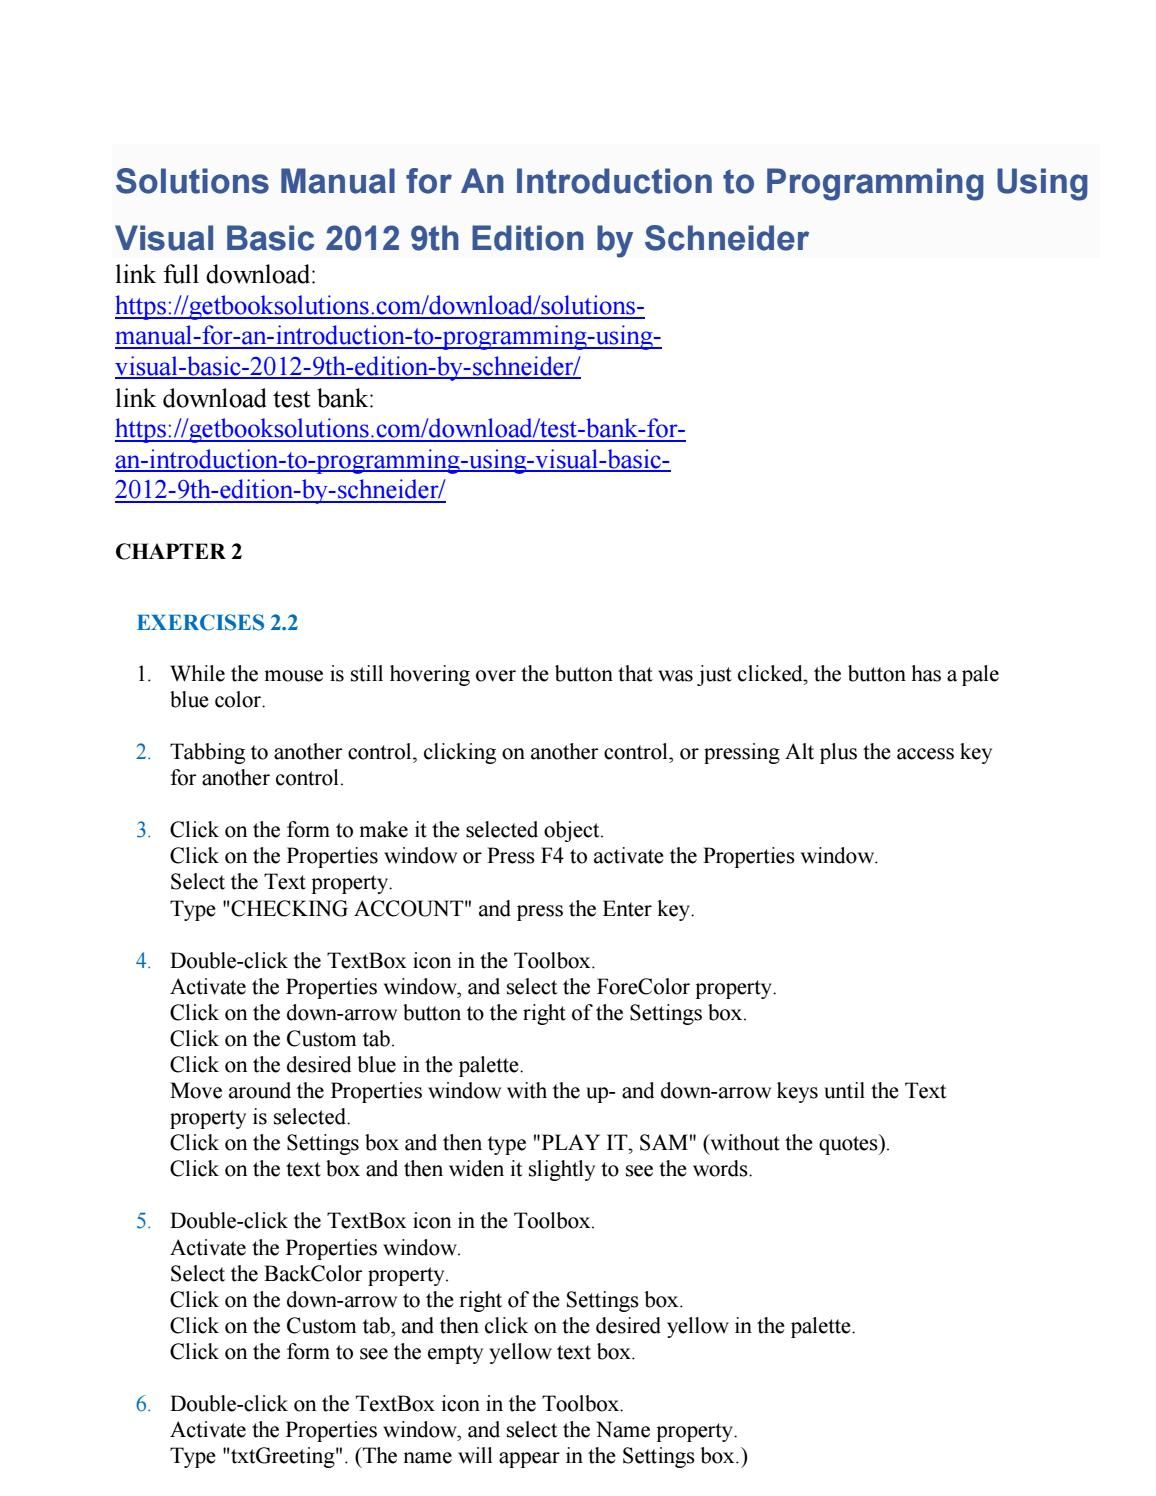 solutions manual for an introduction to programming using visual rh pinterest com visual basic programming guide visual basic programming guide download